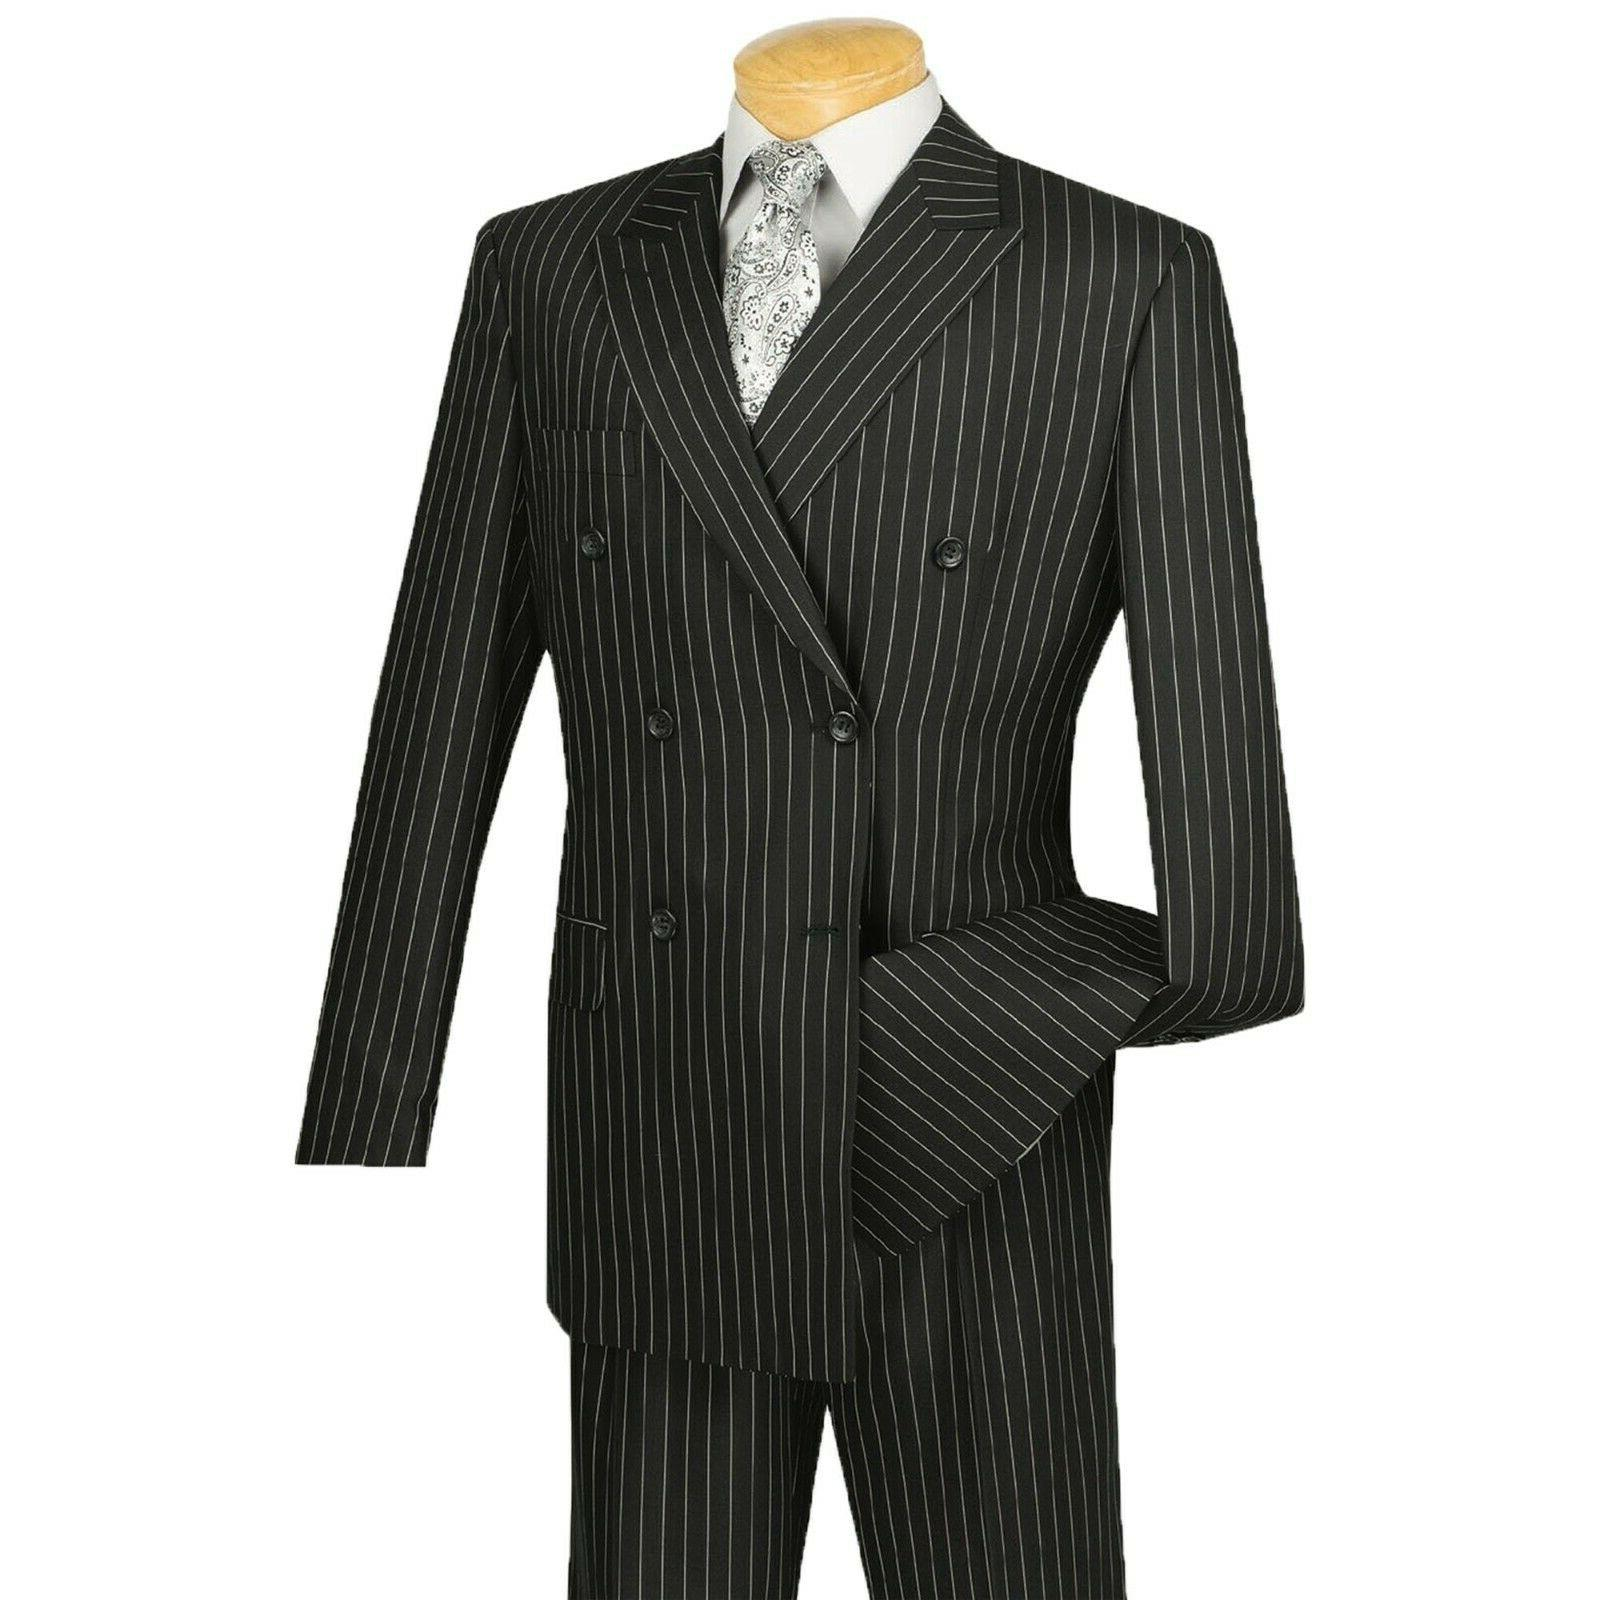 VINCI Men's Black Double Breasted Classic Fit Suit